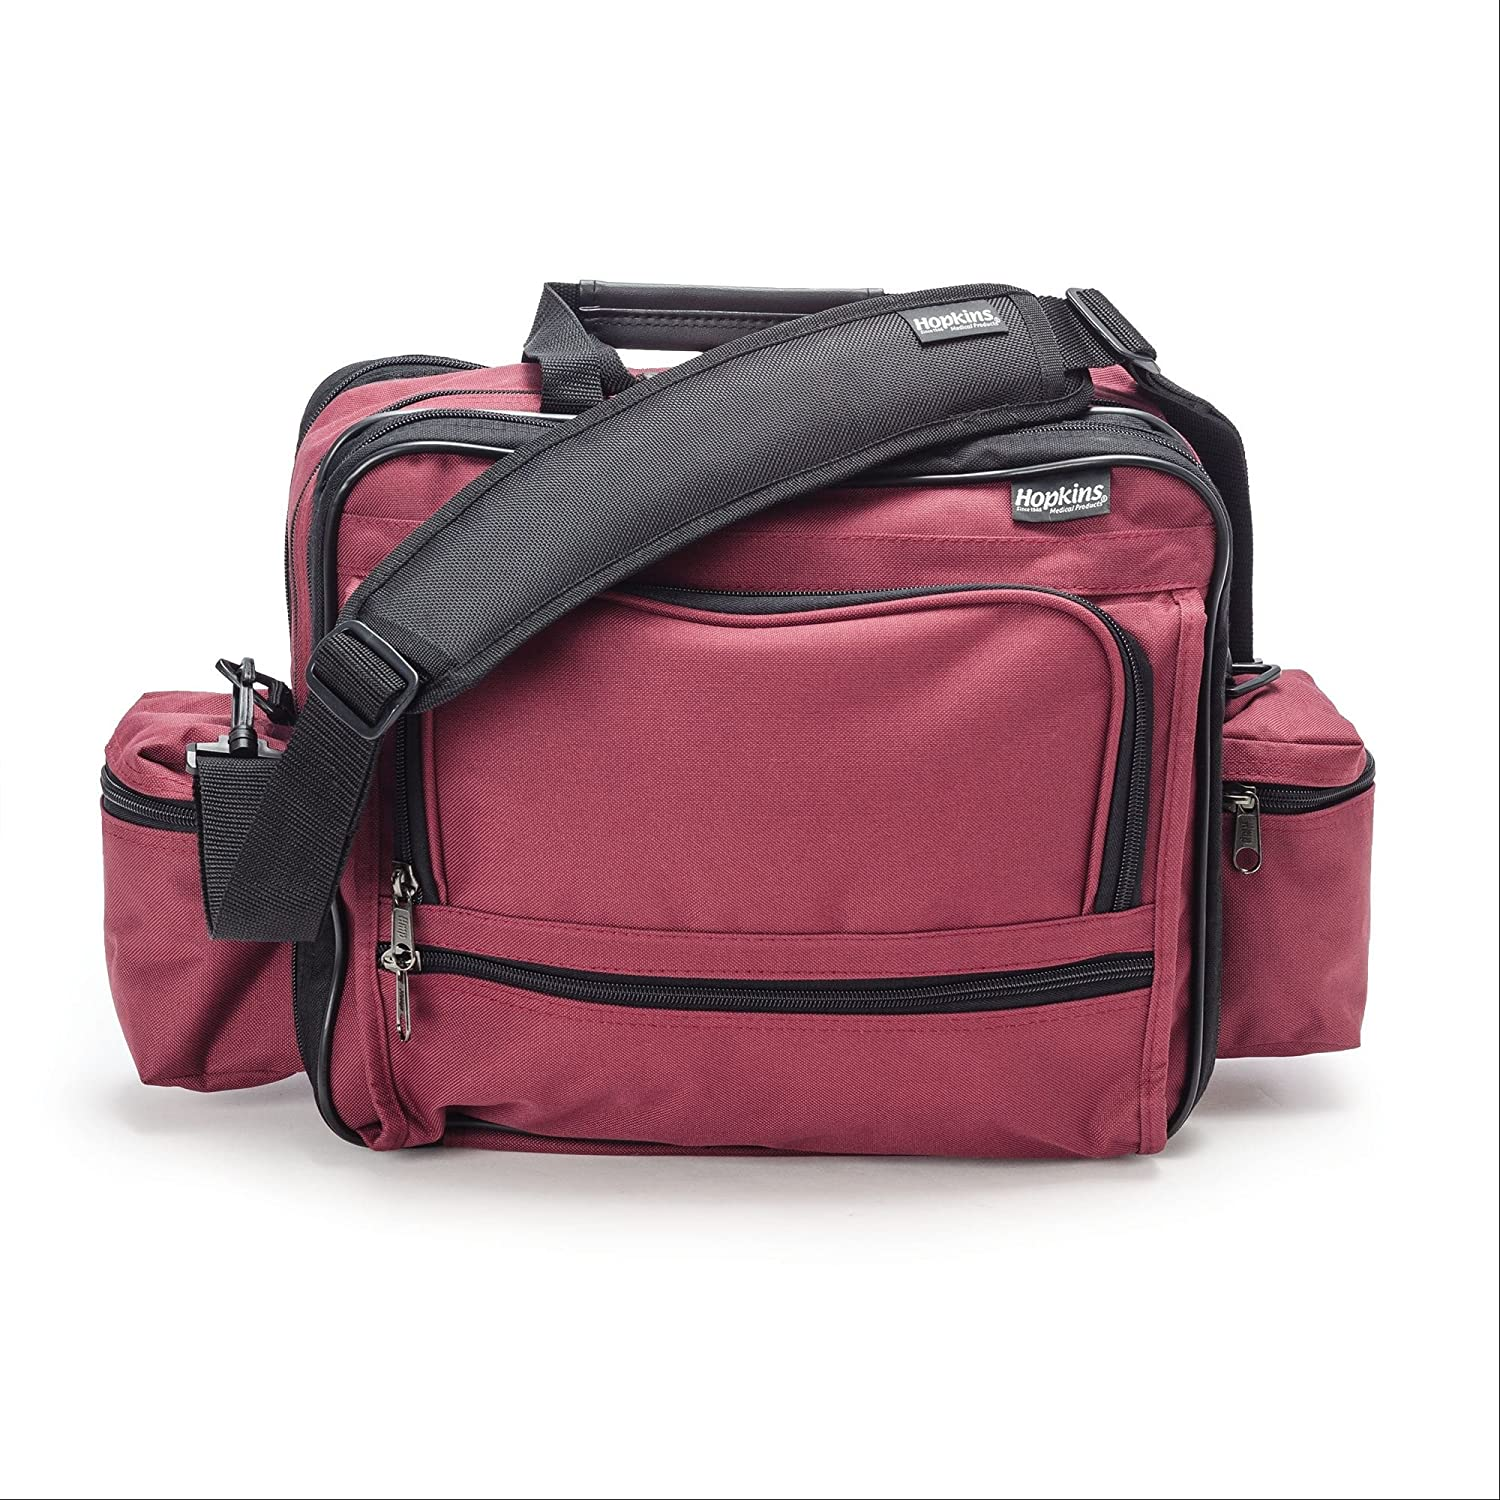 Hopkins Medical Products Mark V Shoulder Bag, HIPAA Compliant Lockable Zippers, Adjustable Straps, Reinforced Bottom, Fold-Down Compartment, 13 Inch x 11.25 Inch x 7.5 Inch, Red